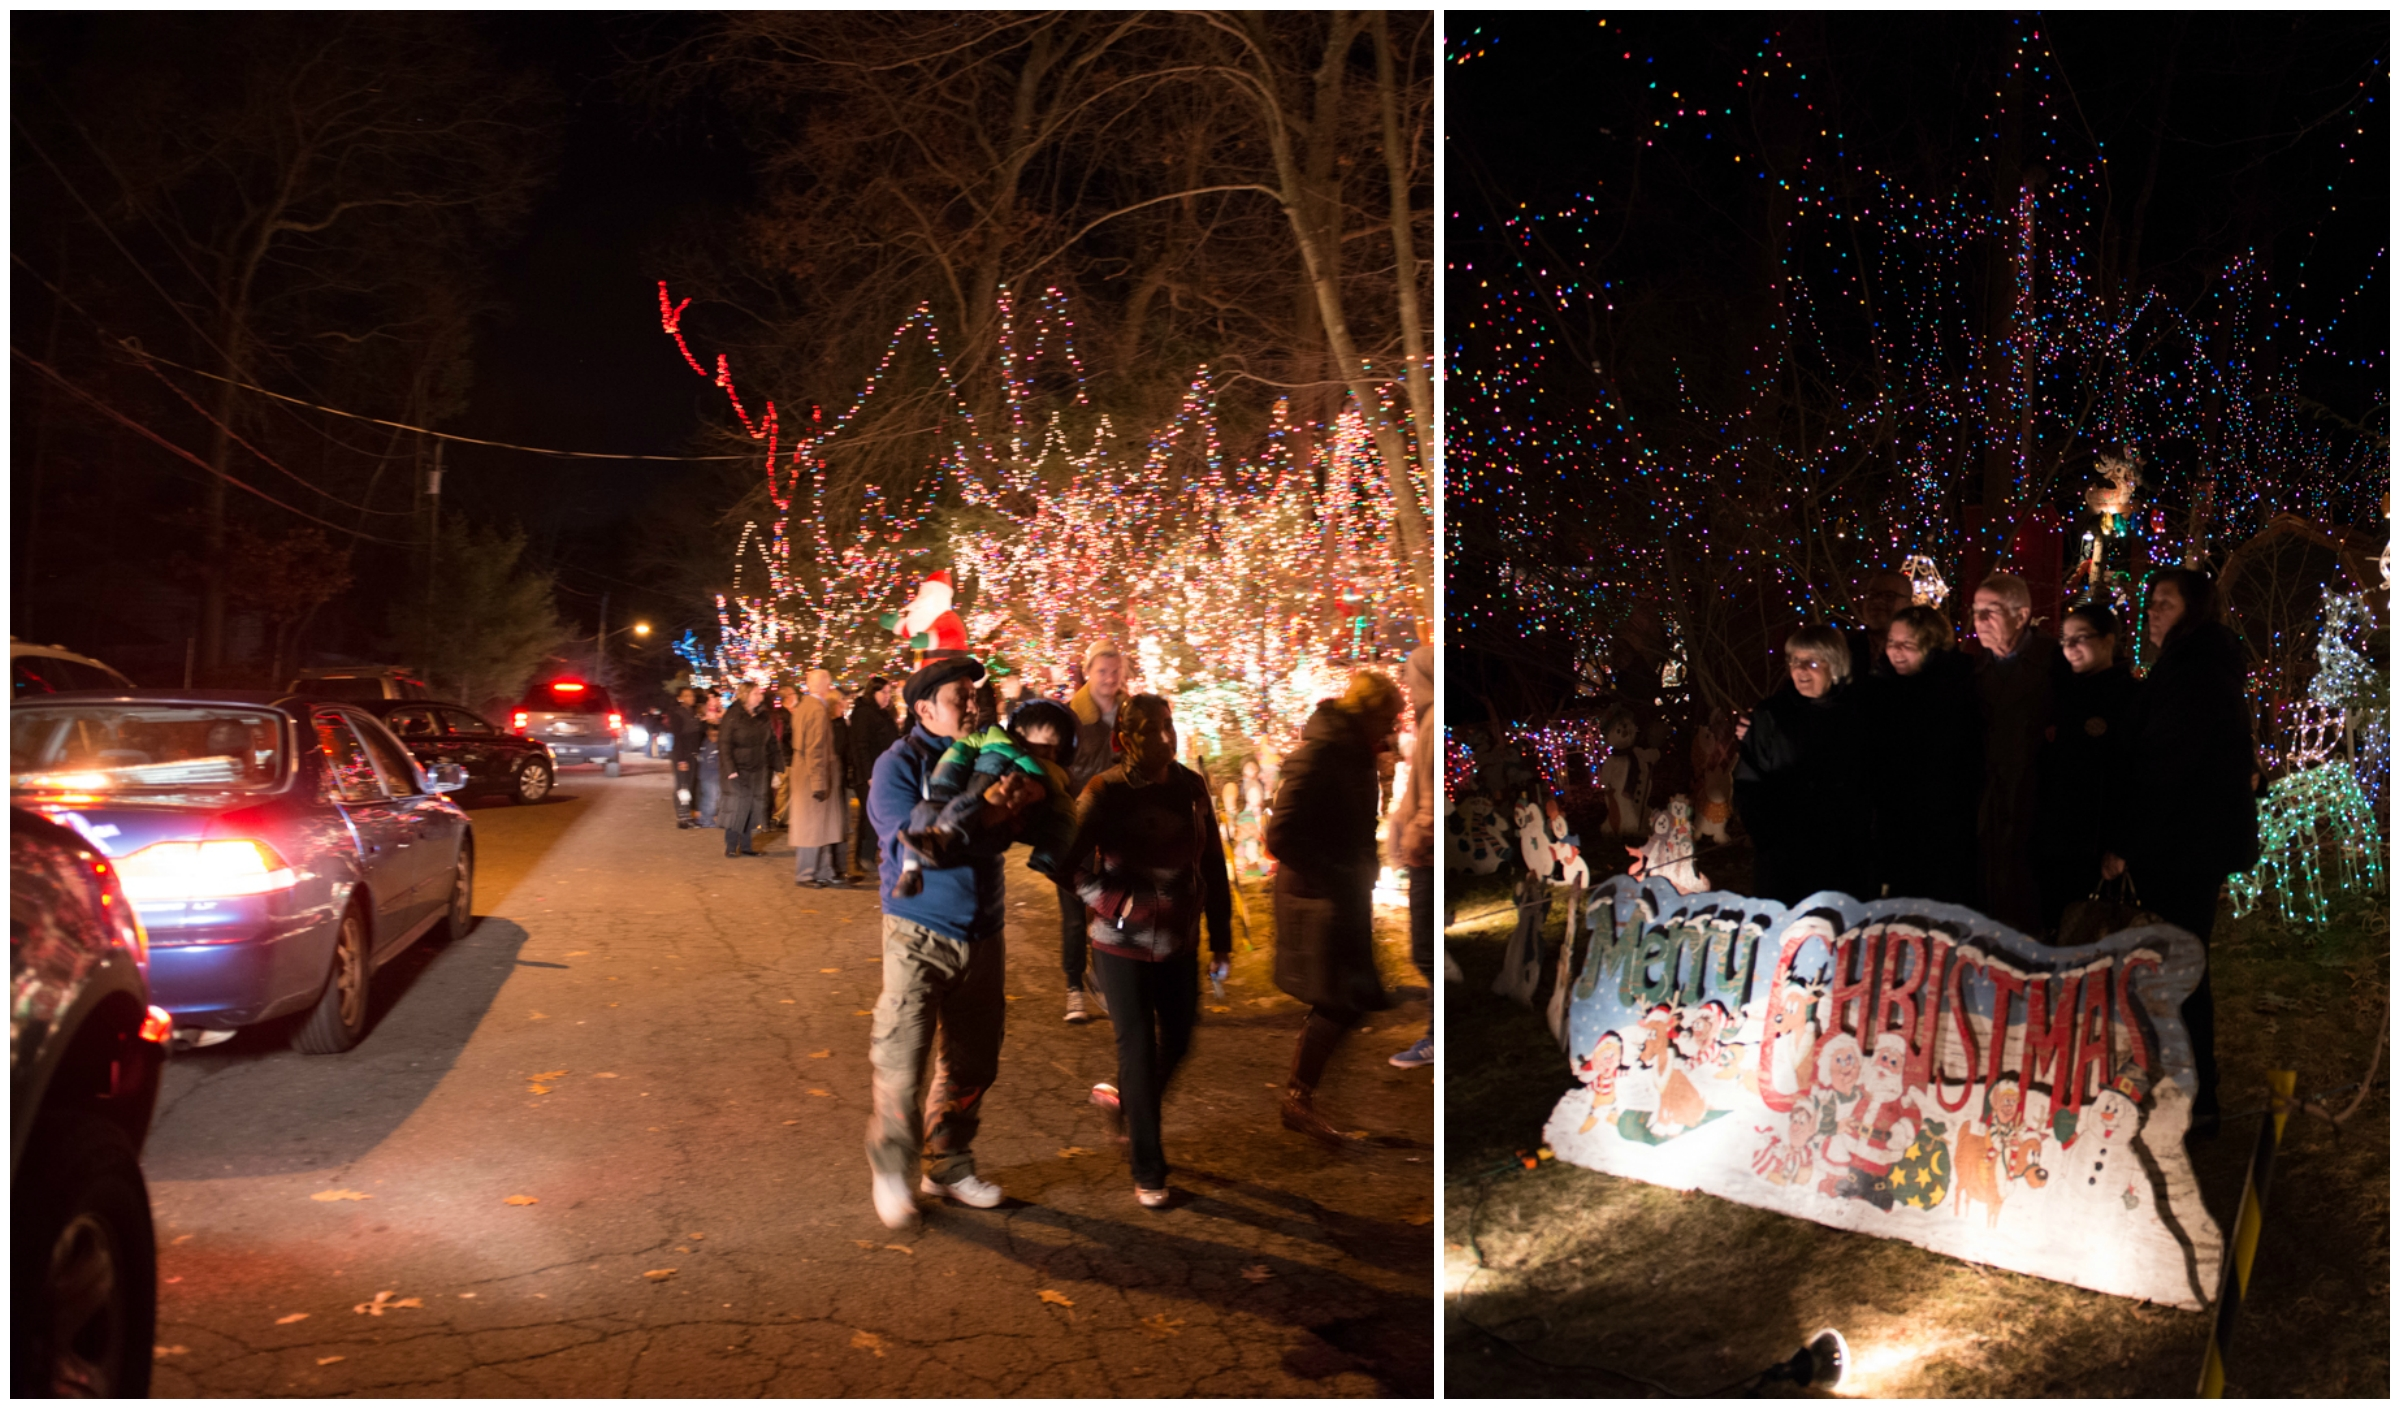 Midwood Rd. was packed on Christmas day with visitors lining up to see the display!